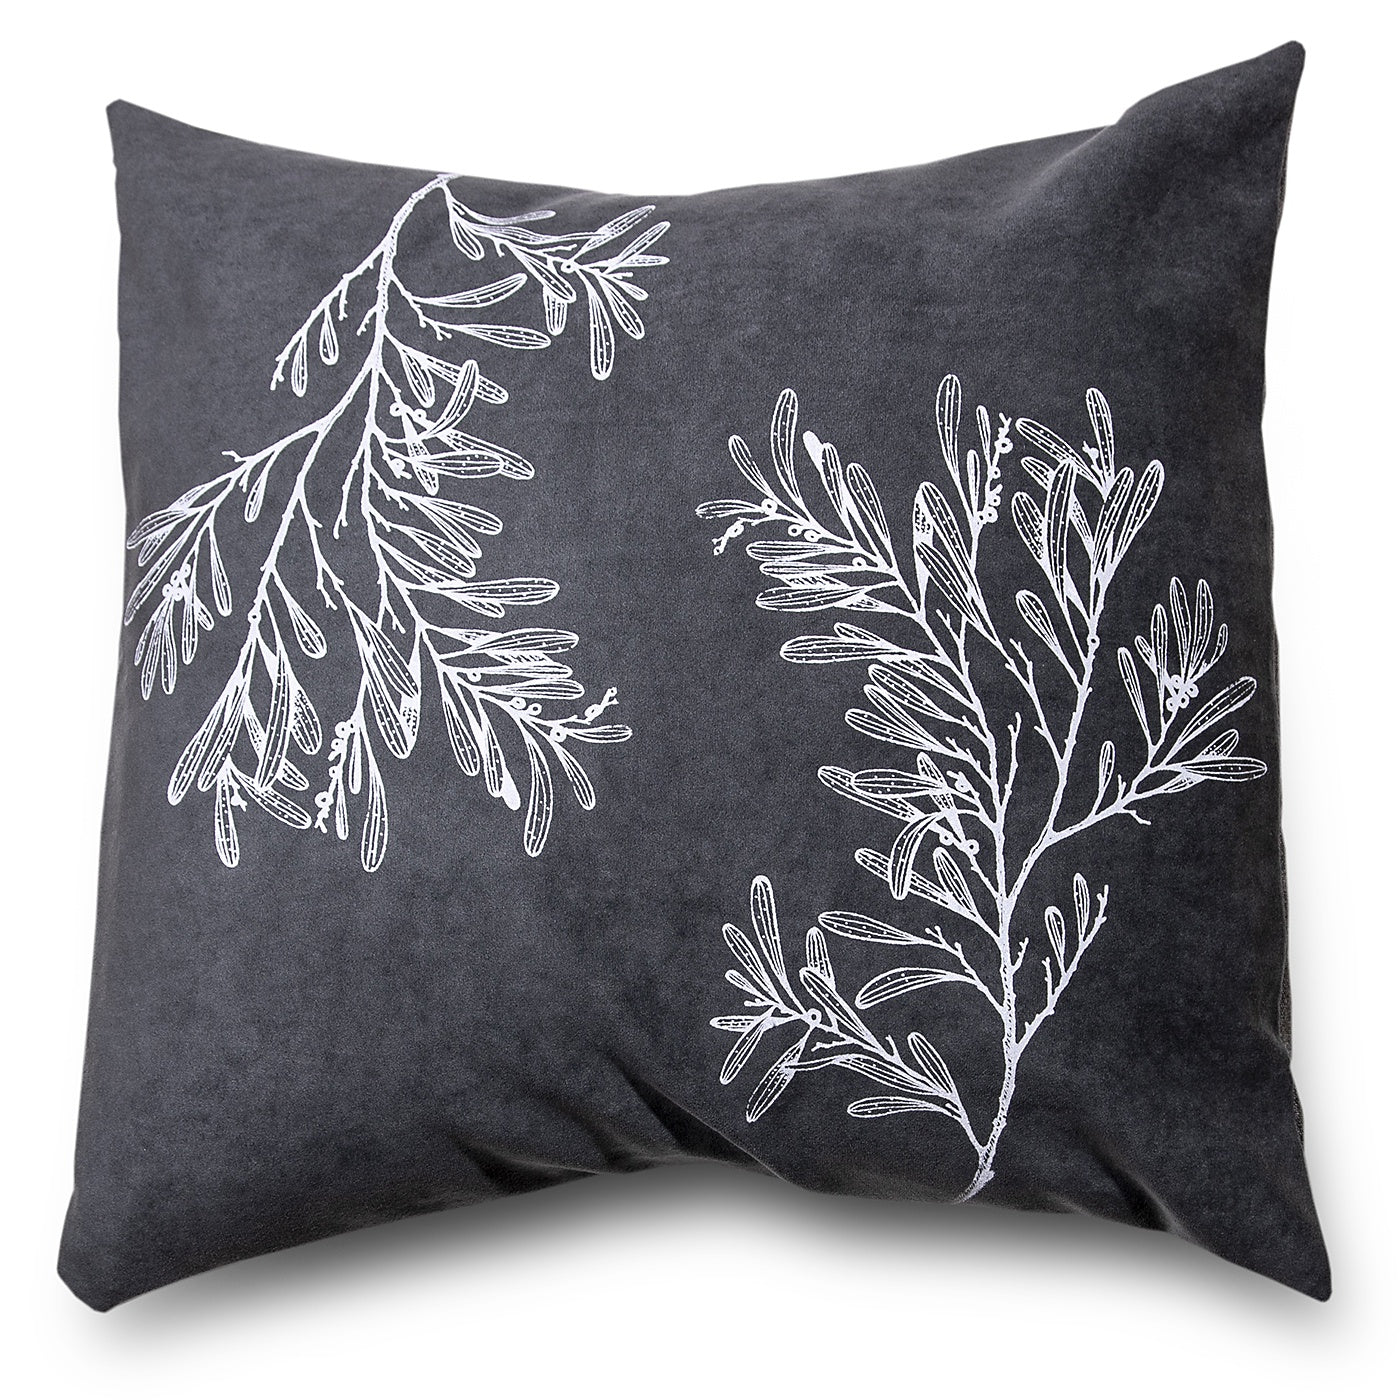 Stalley Textile Co. - Cushion Cover - Blackwood - White on Charcoal